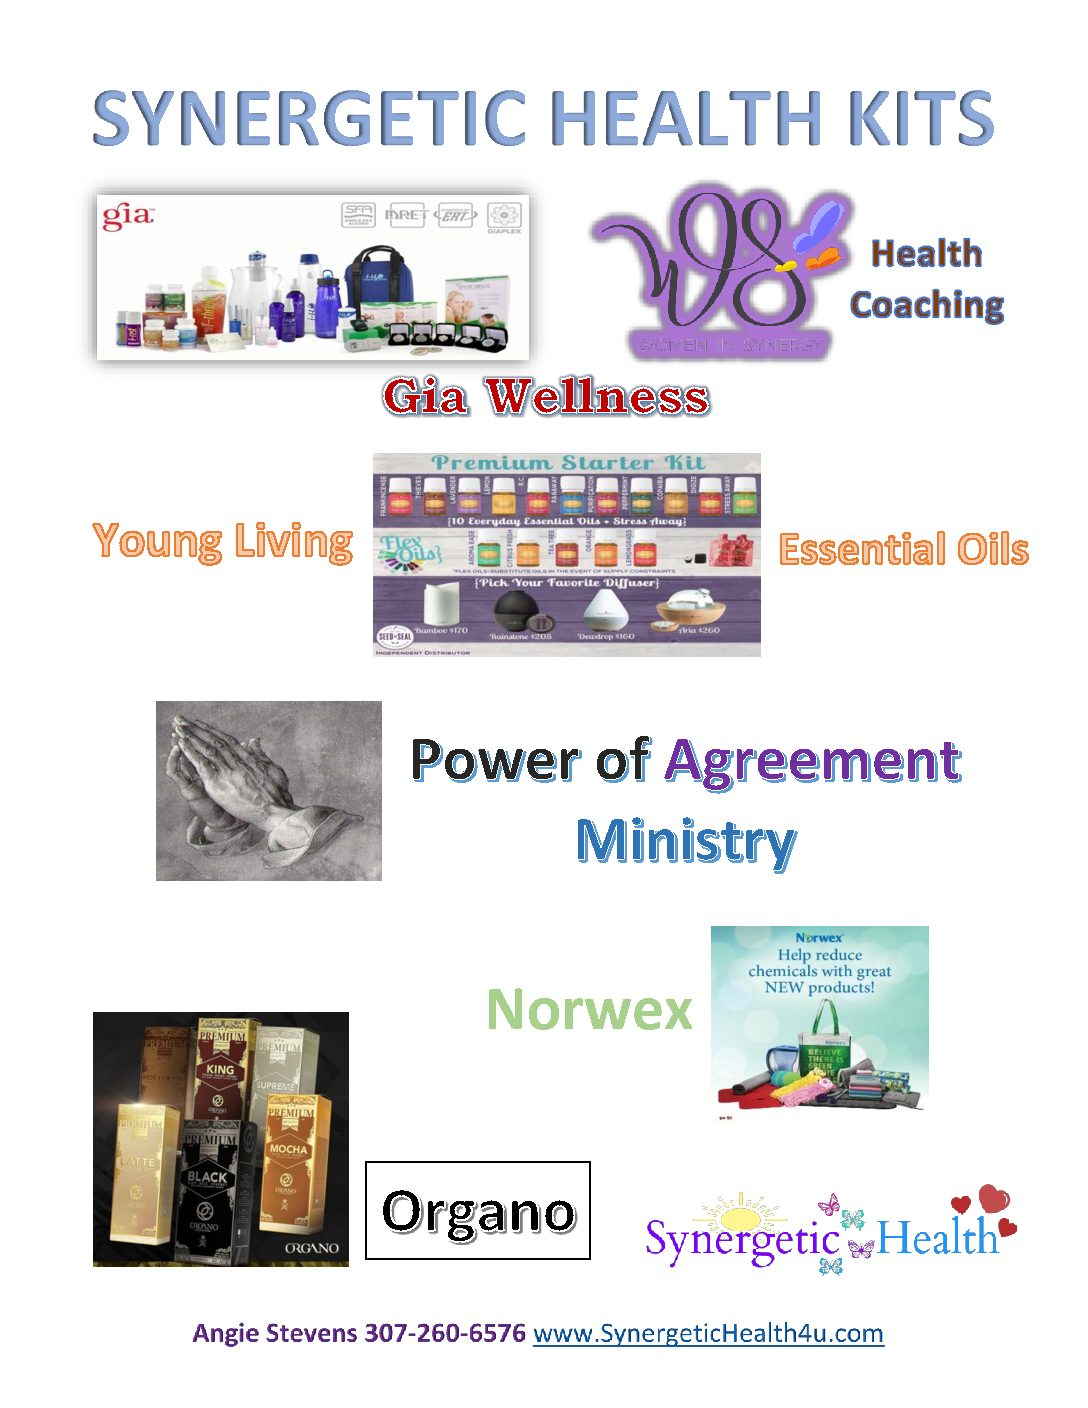 Synergetic Health Kits